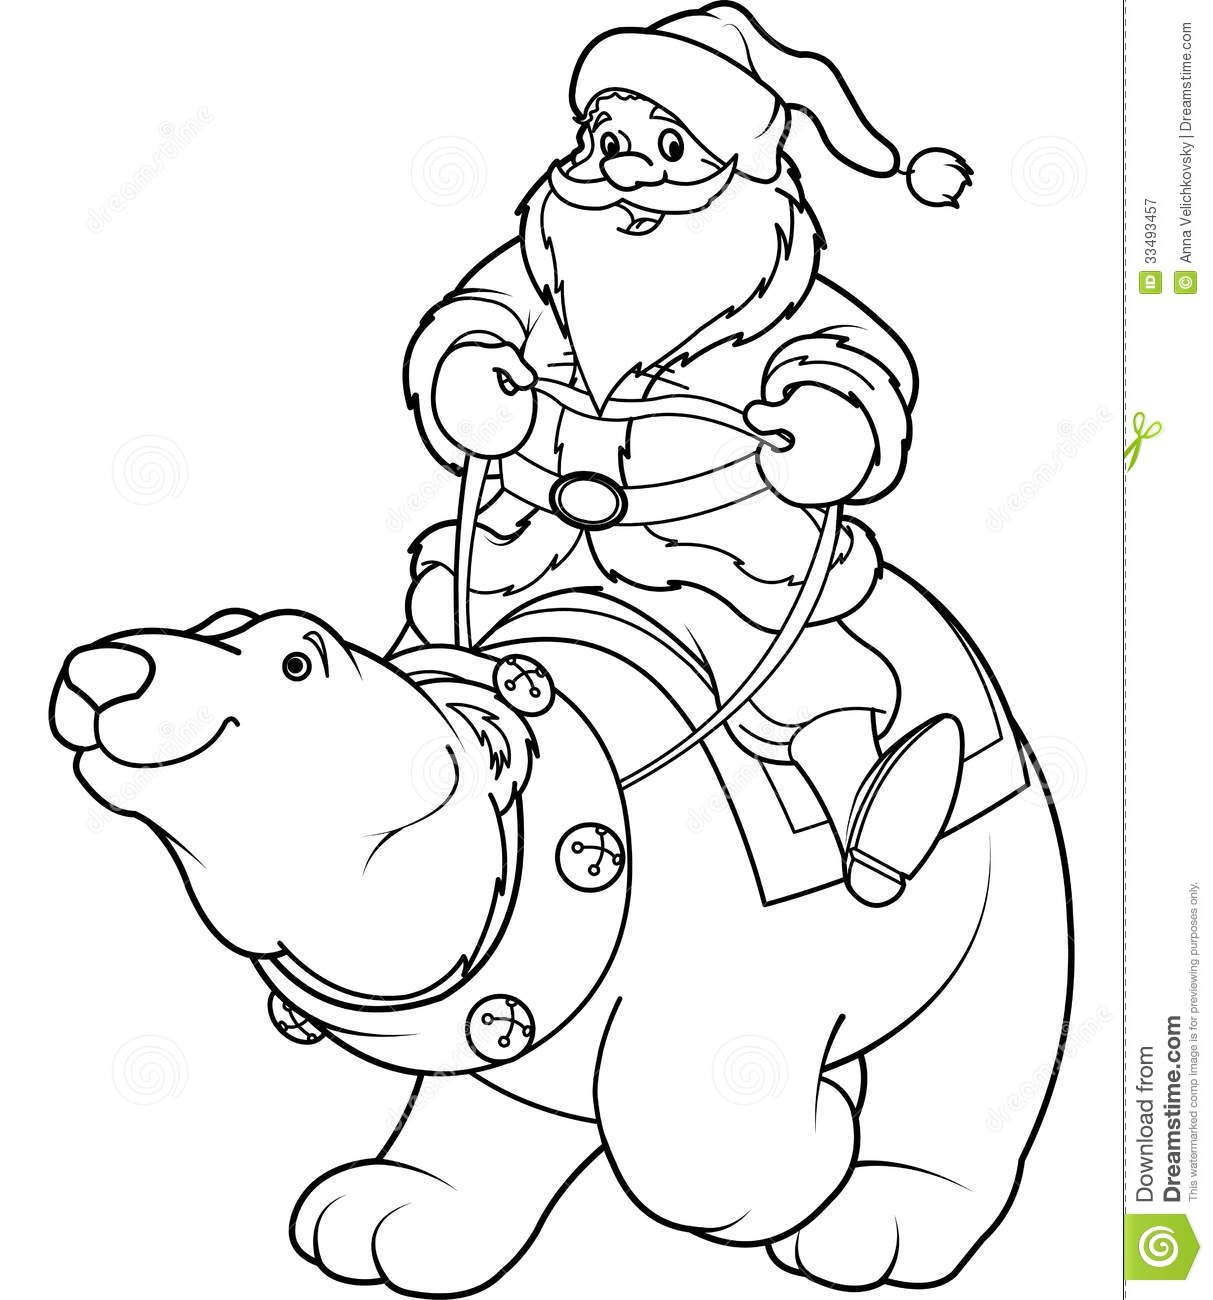 Christmas Polar Bear Coloring Pages At Getcolorings